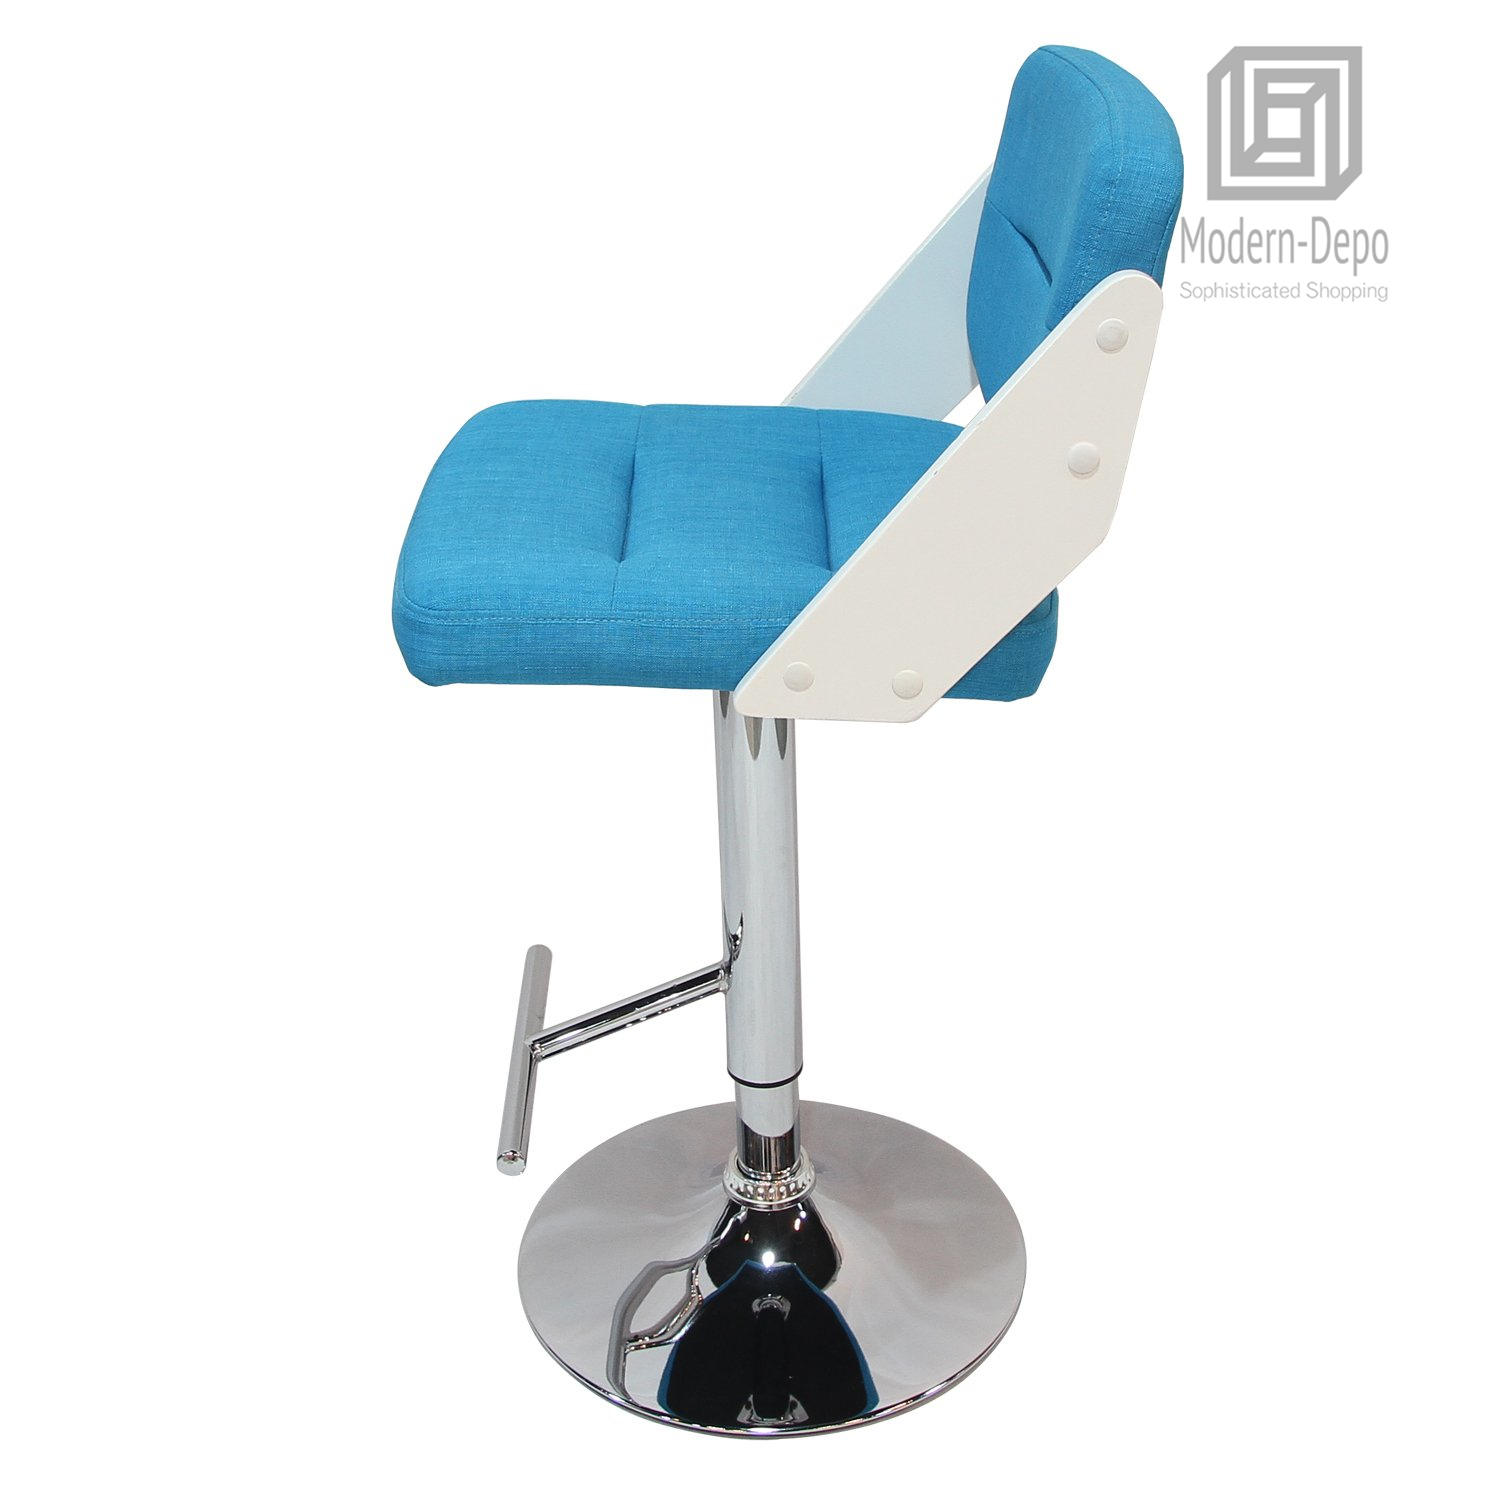 Admirable Details About Adjustable Height Counter Stool Barstool Fabric Chrome Finish Pedestal Base Cjindustries Chair Design For Home Cjindustriesco